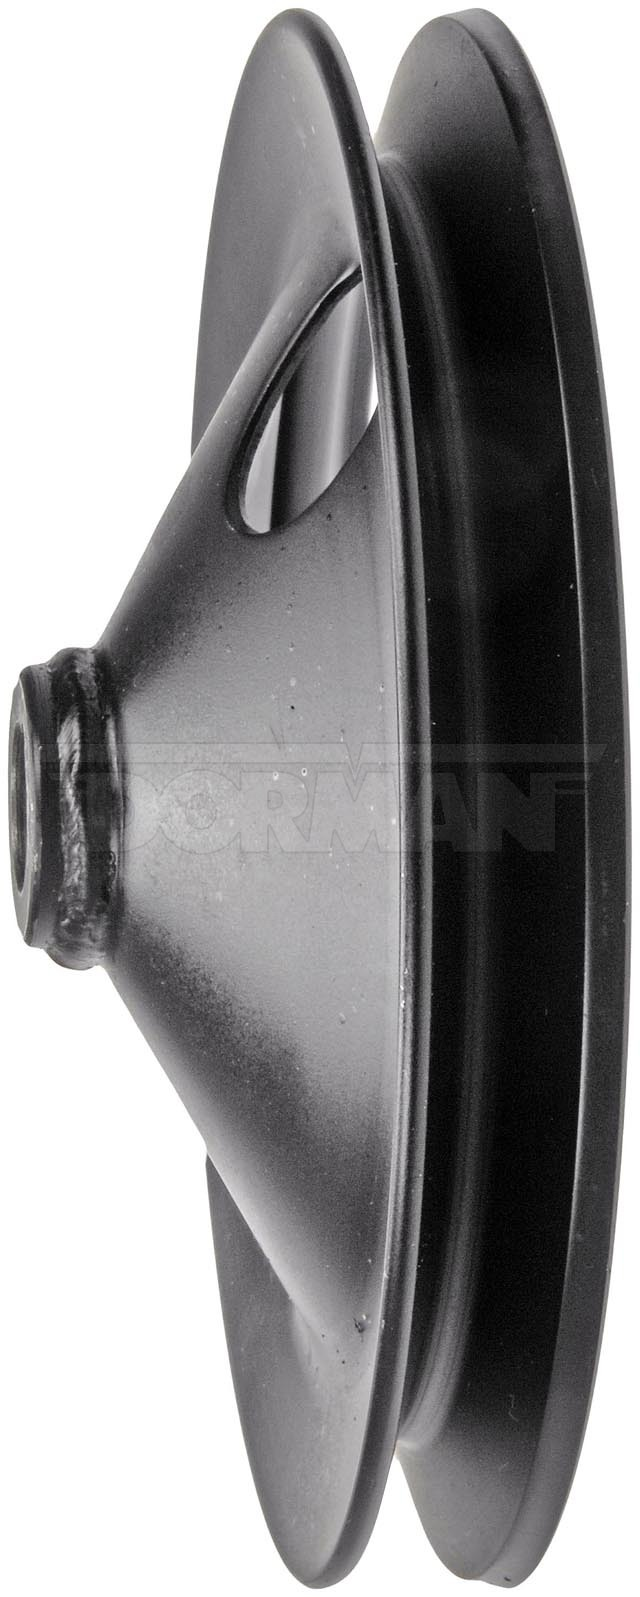 Dorman # 300-120 Power Steering Pump Pulley